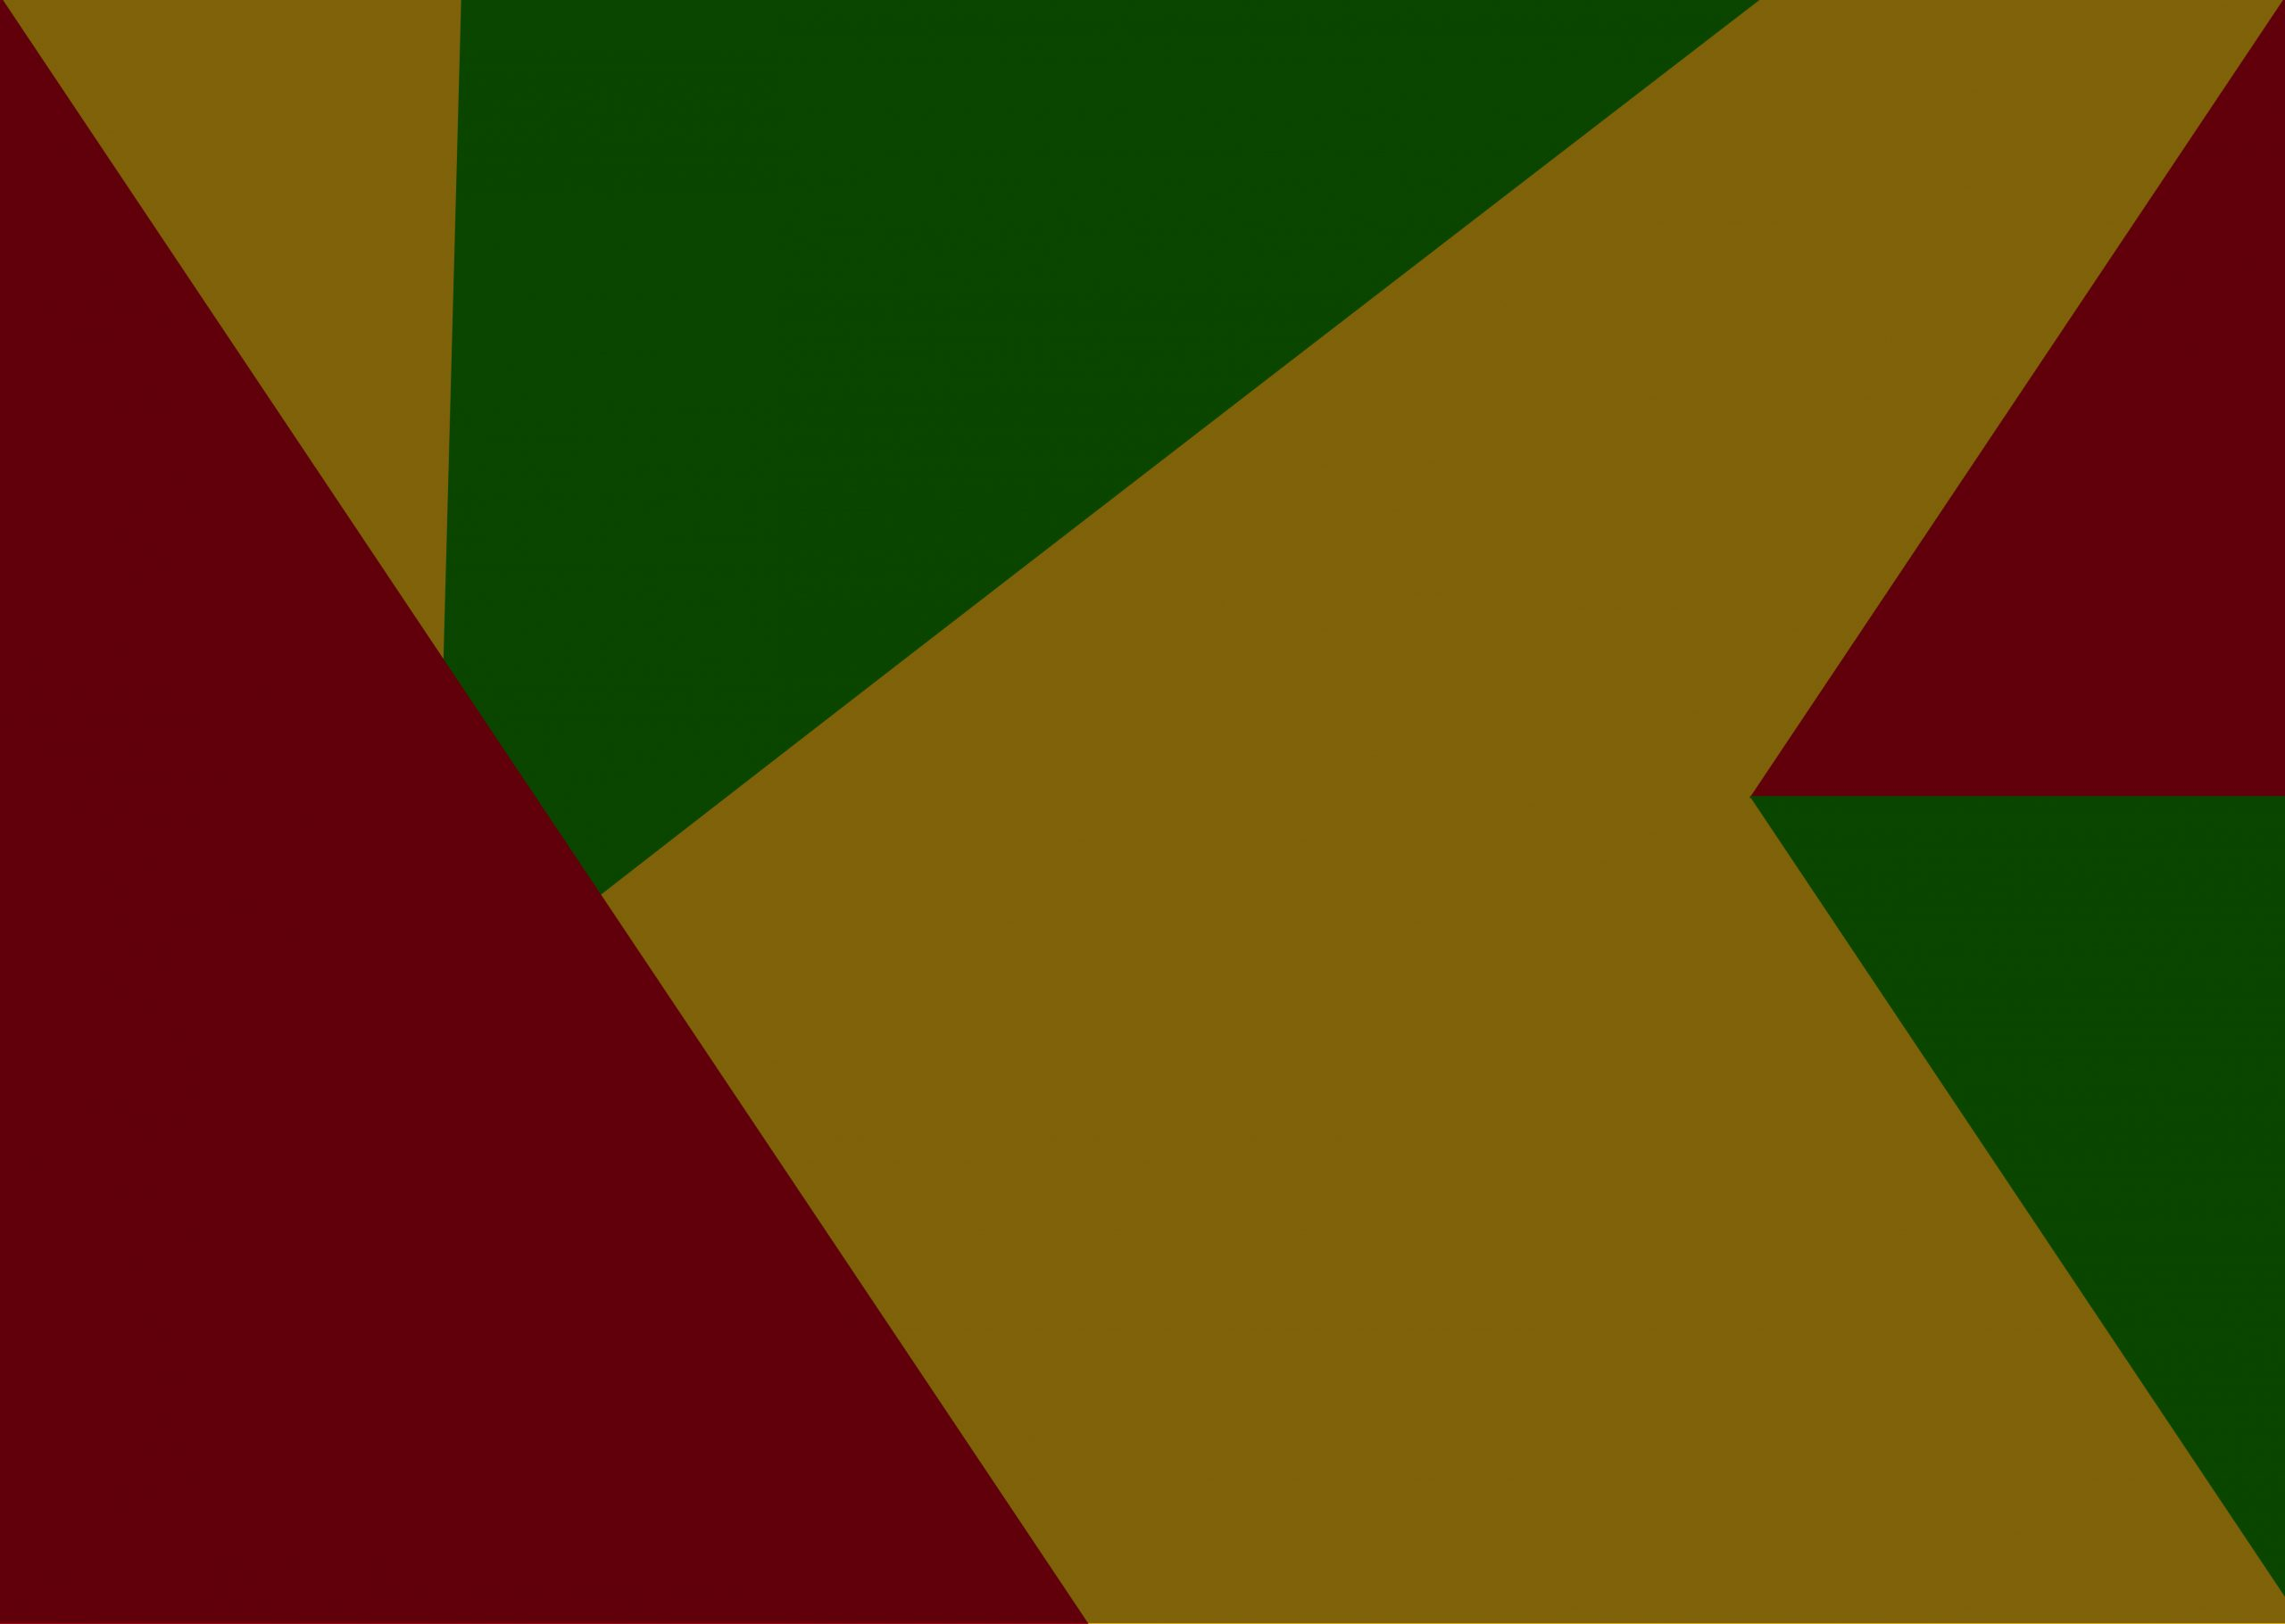 red, yellow and green geometric shape design